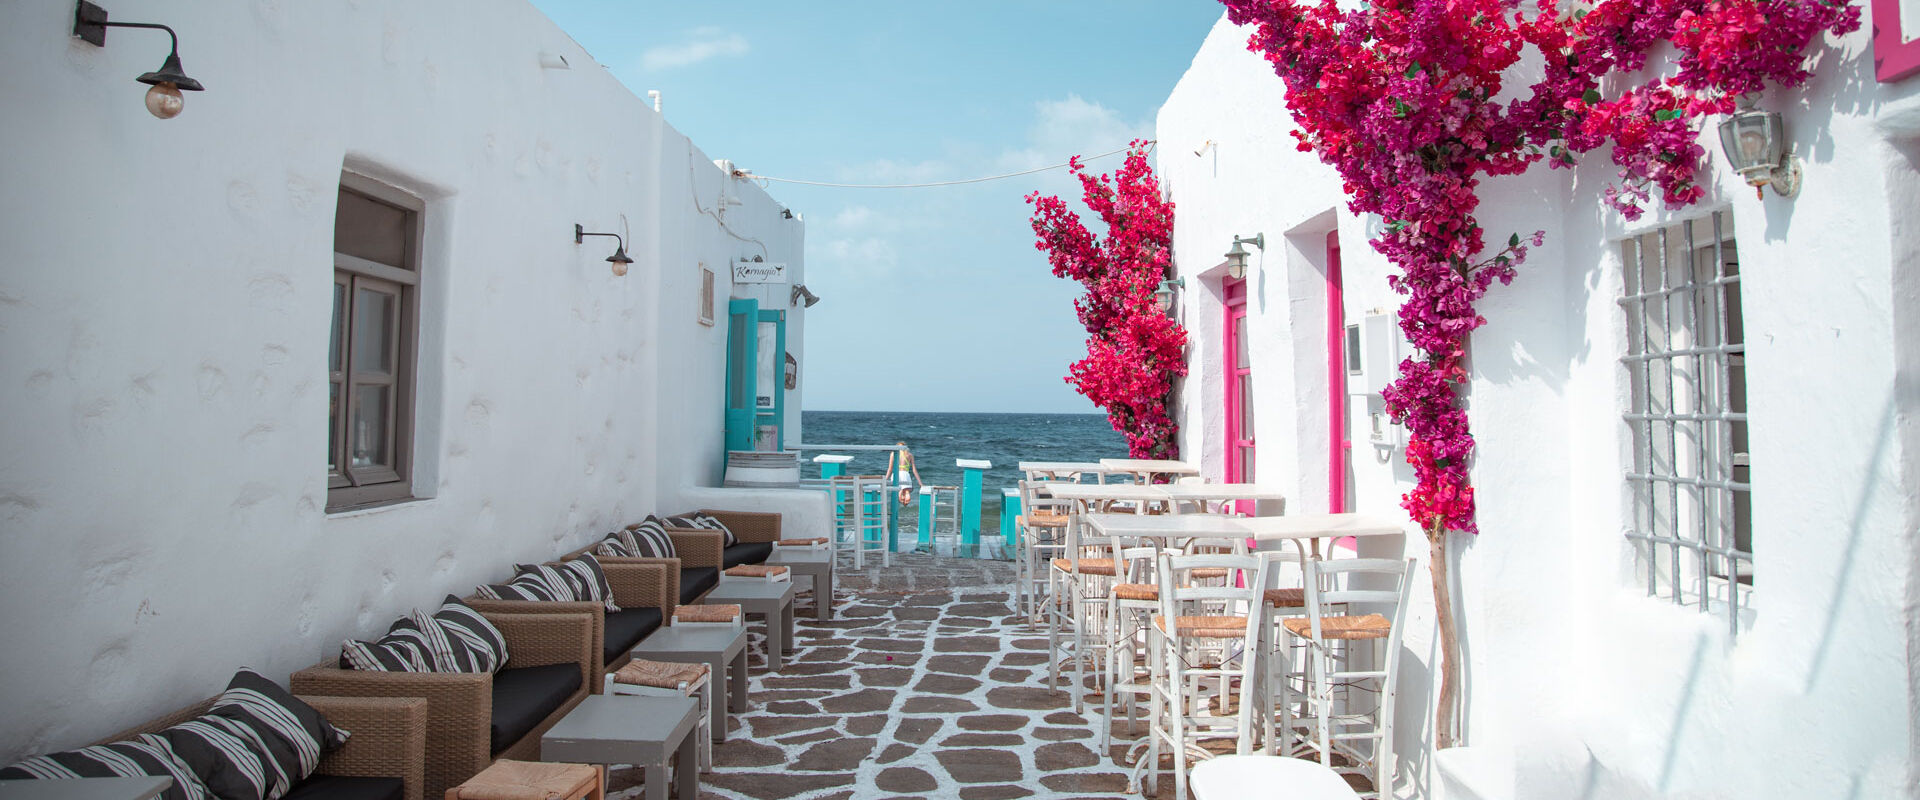 0. Greek Islands_Heading